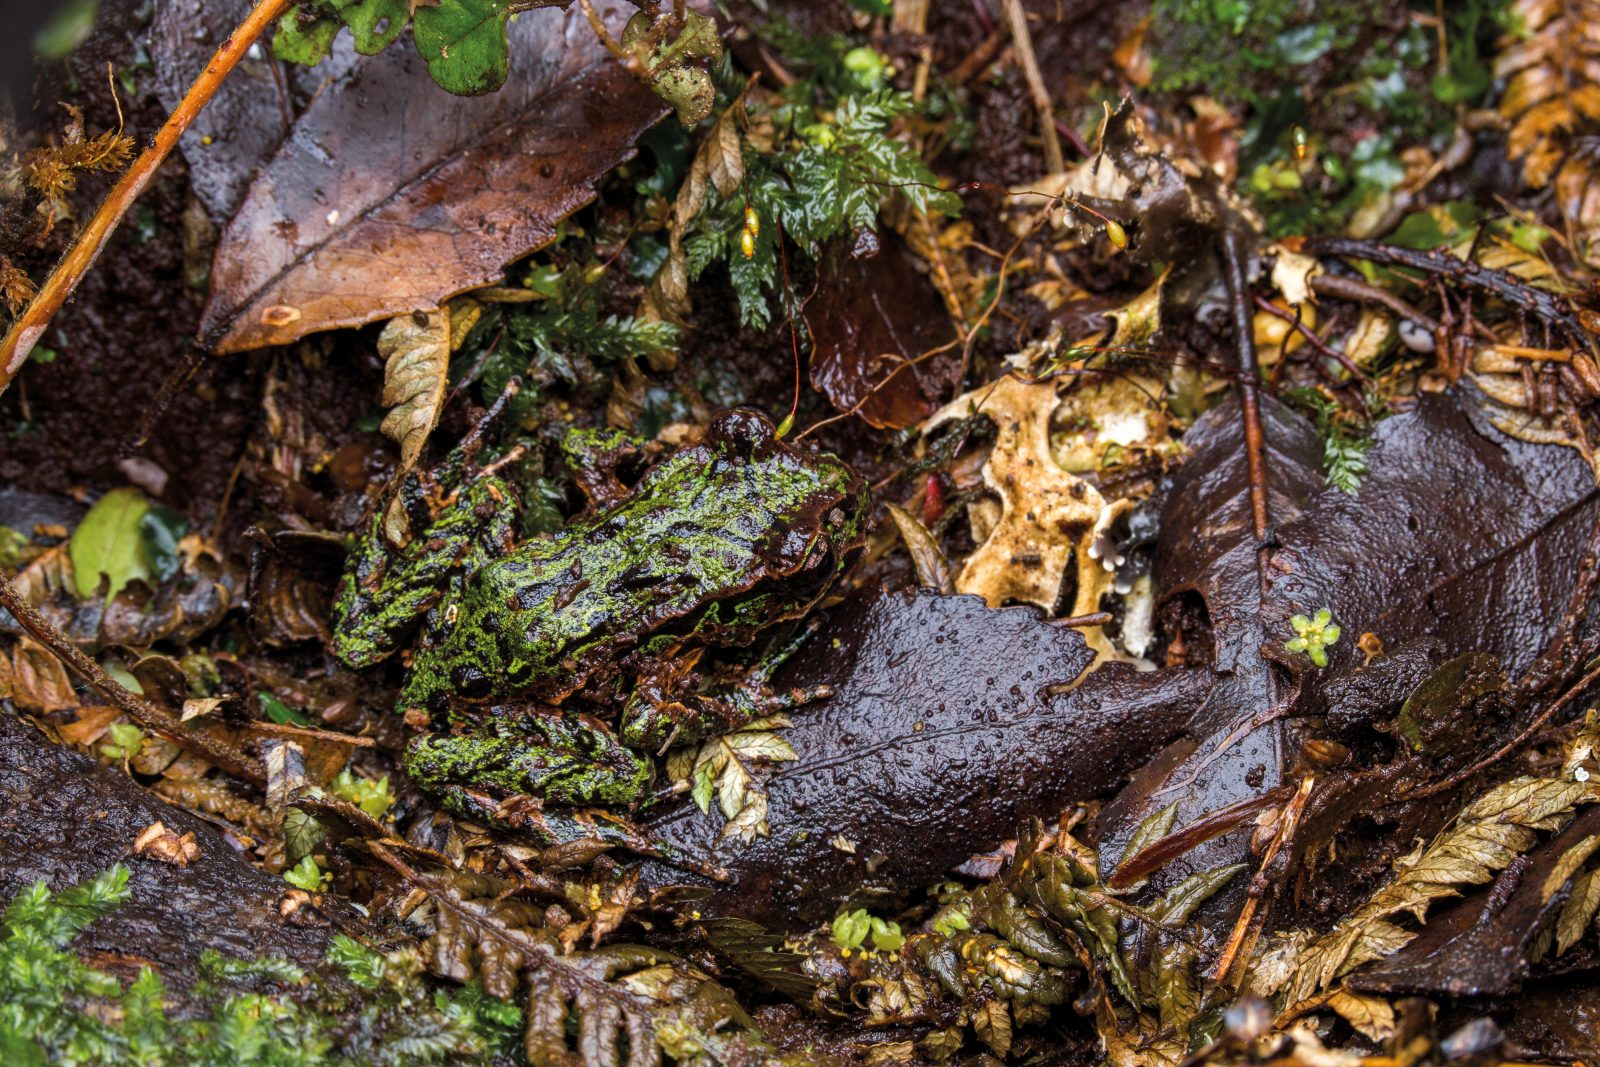 Archey's frogs are 'ambush feeders', waiting motionlessly on logs or within tree ferns for invertebrate food to pass by. They are known to climb several metres up trees, and it's likely that they do this in pursuit of a meal.